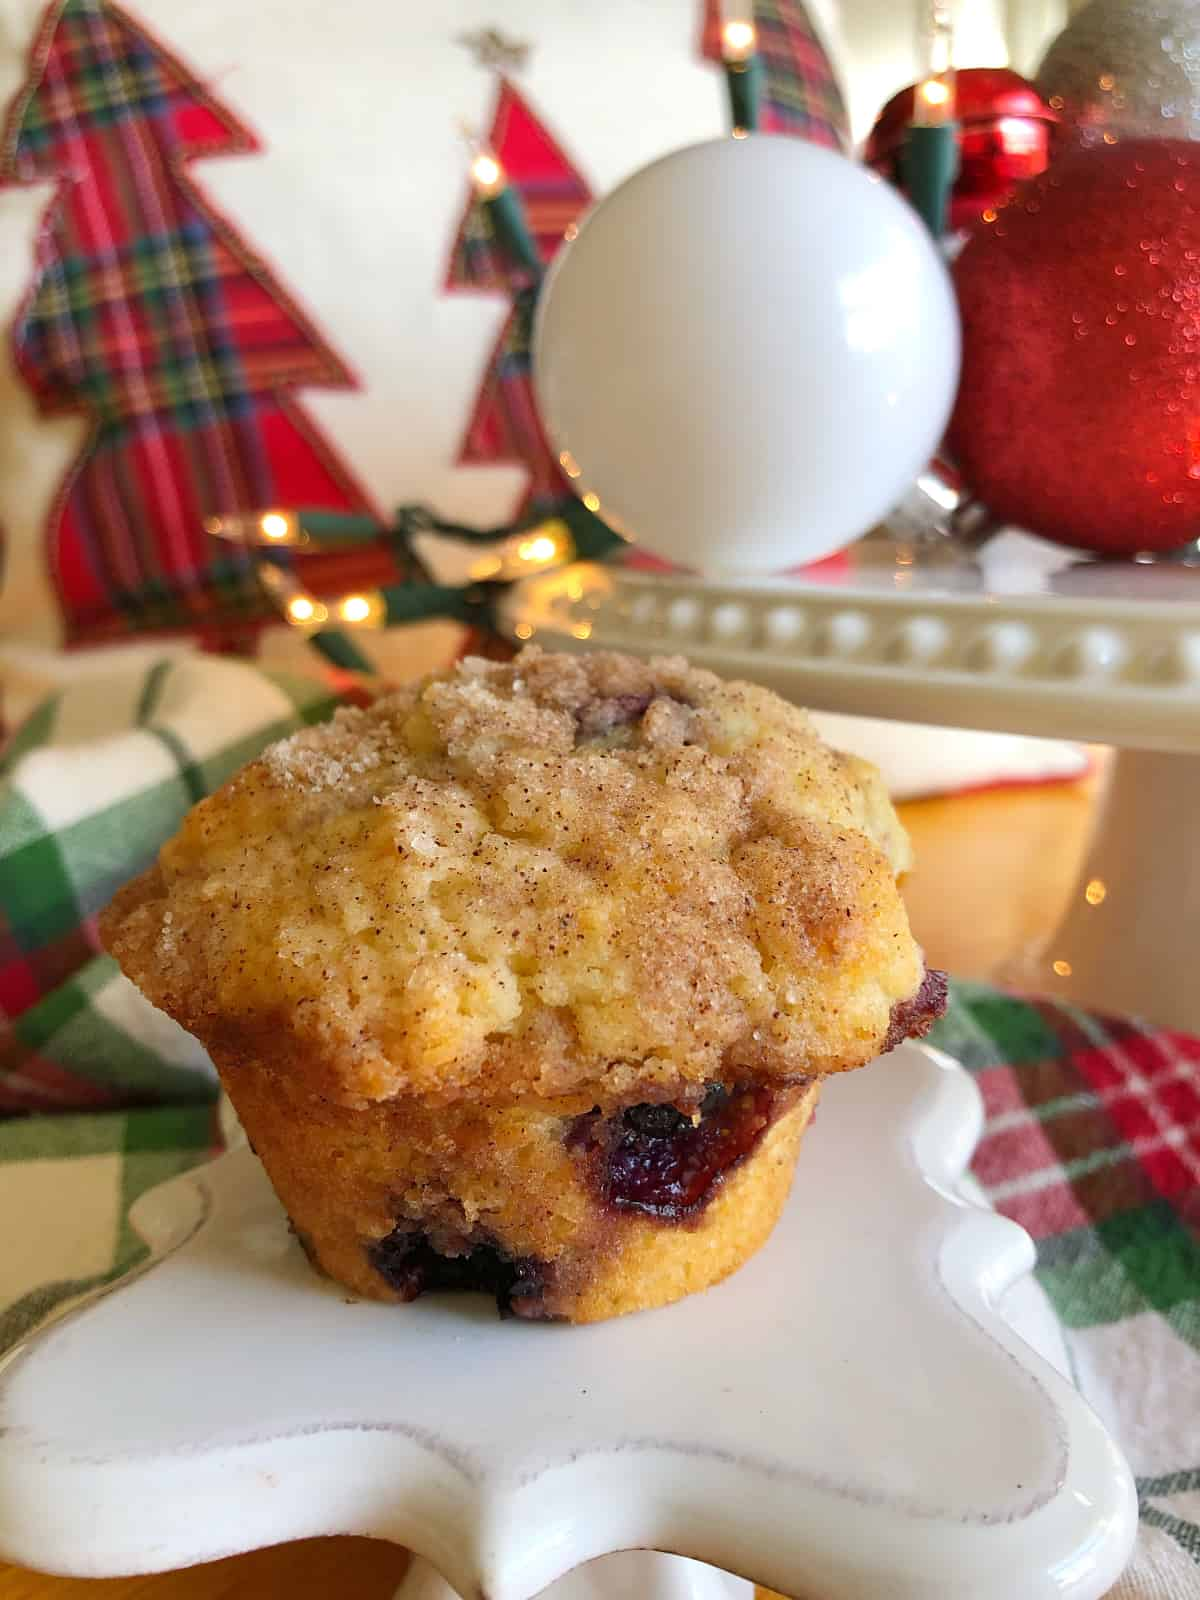 Christmas morning blueberry streusel muffin with the muffin on a decorative pedestal with Christmas decor in the background